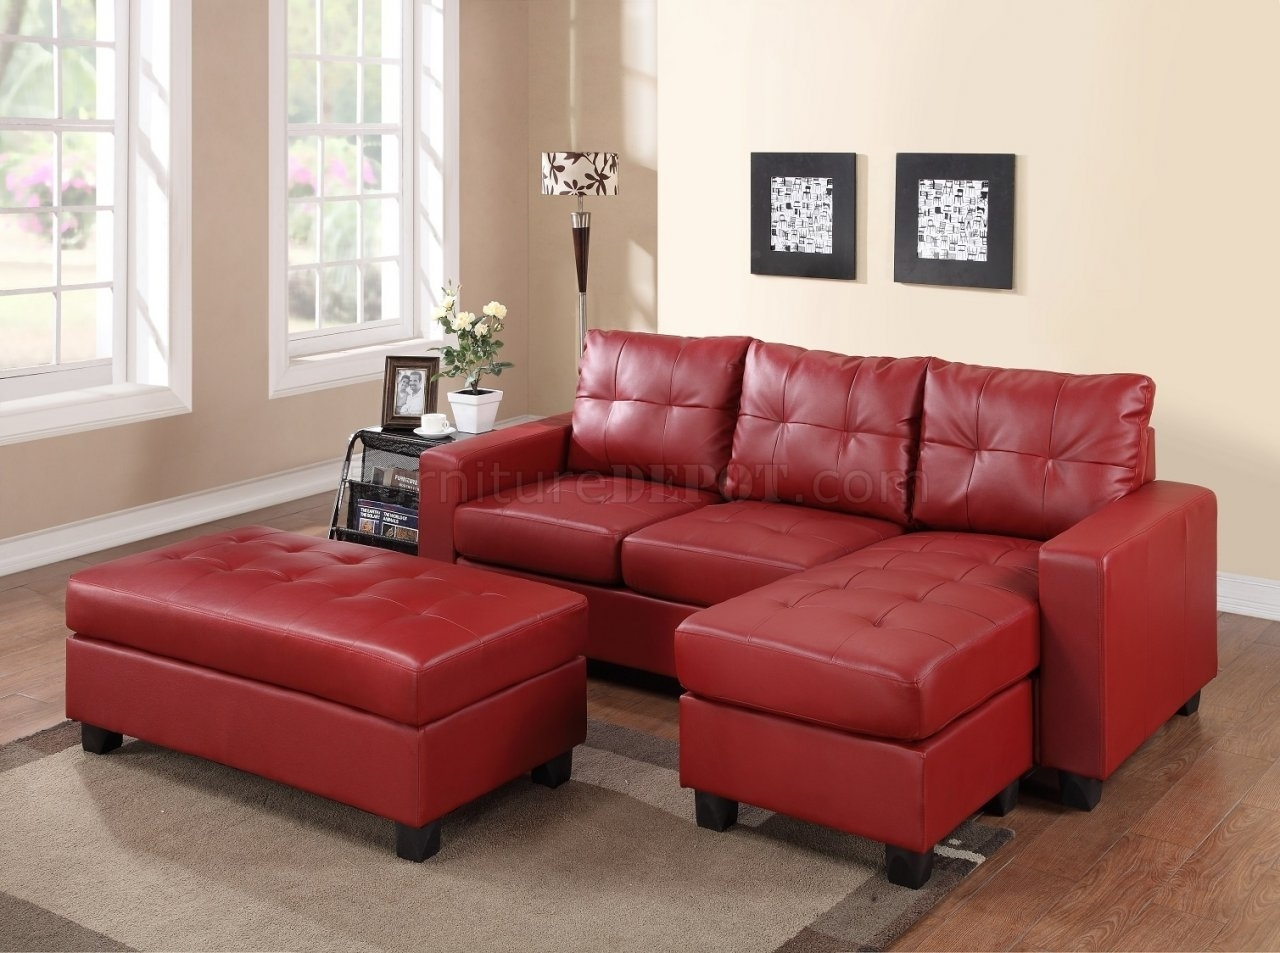 2511 Sectional Sofa Set In Red Bonded Leather Match Pu with Red Leather Sectional Couches